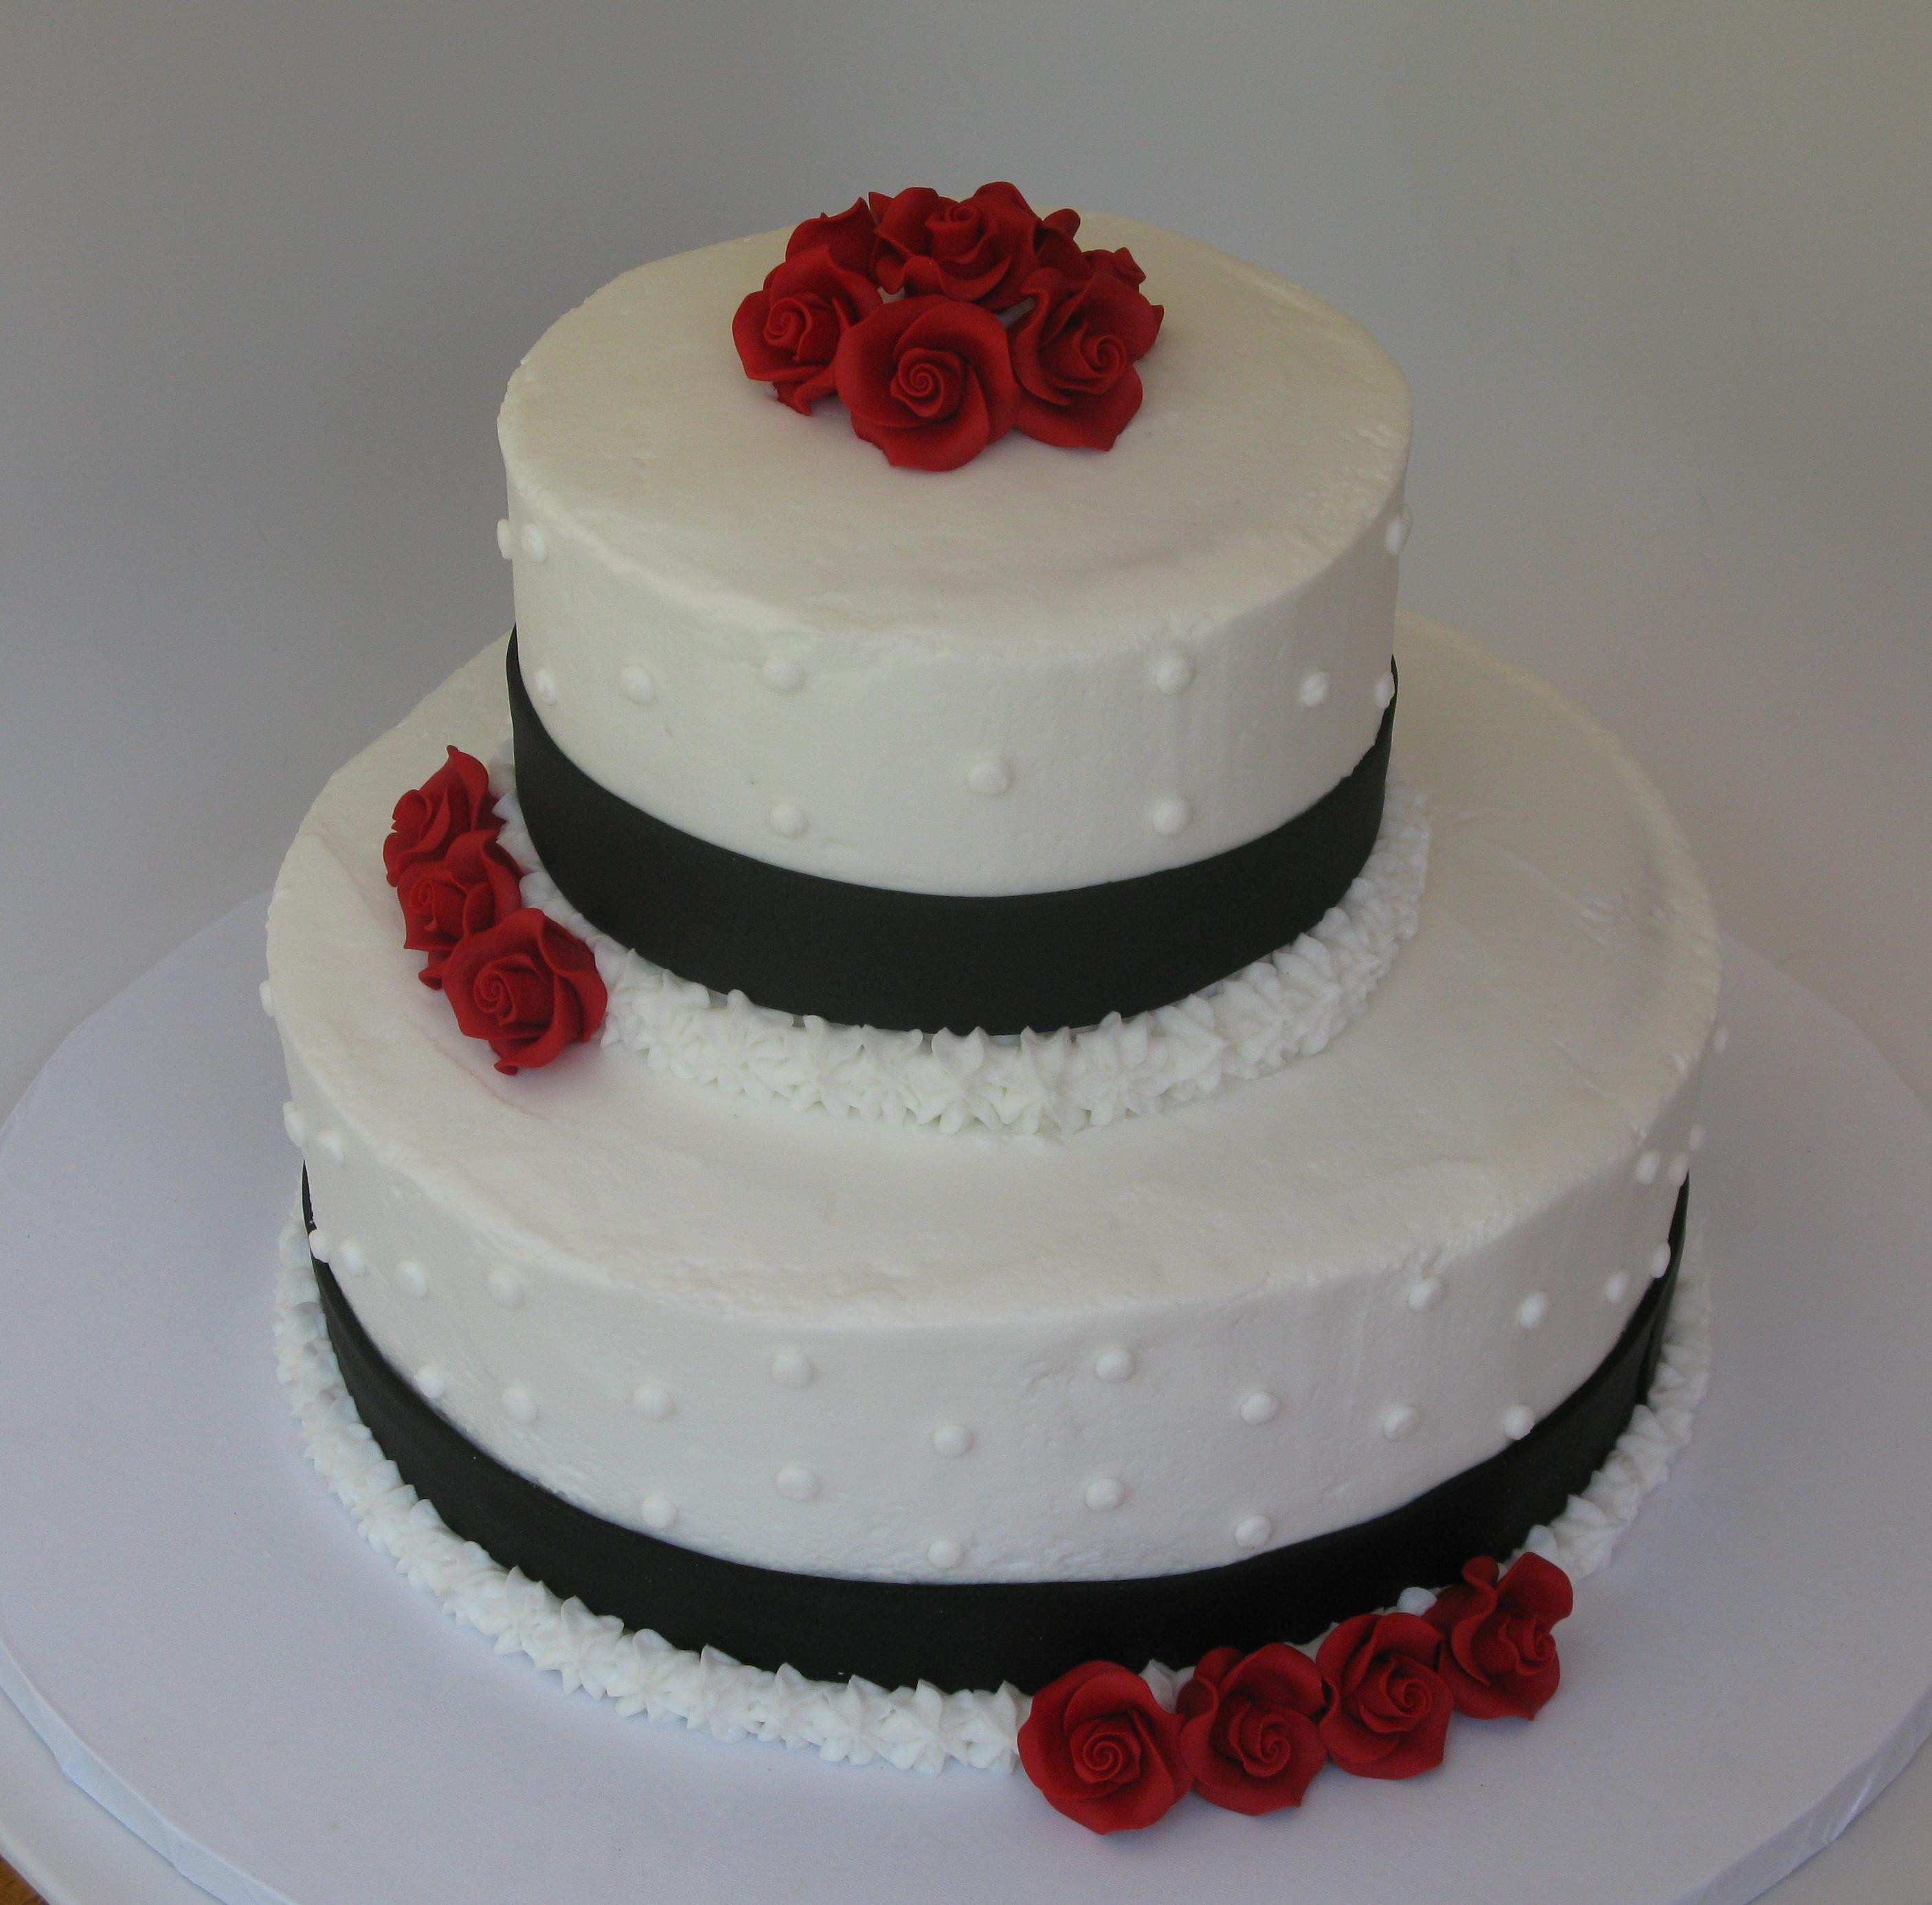 Small Wedding Cakes Designs  25 CUTE SMALL WEDDING CAKES FOR THE SPECIAL OCCASSION